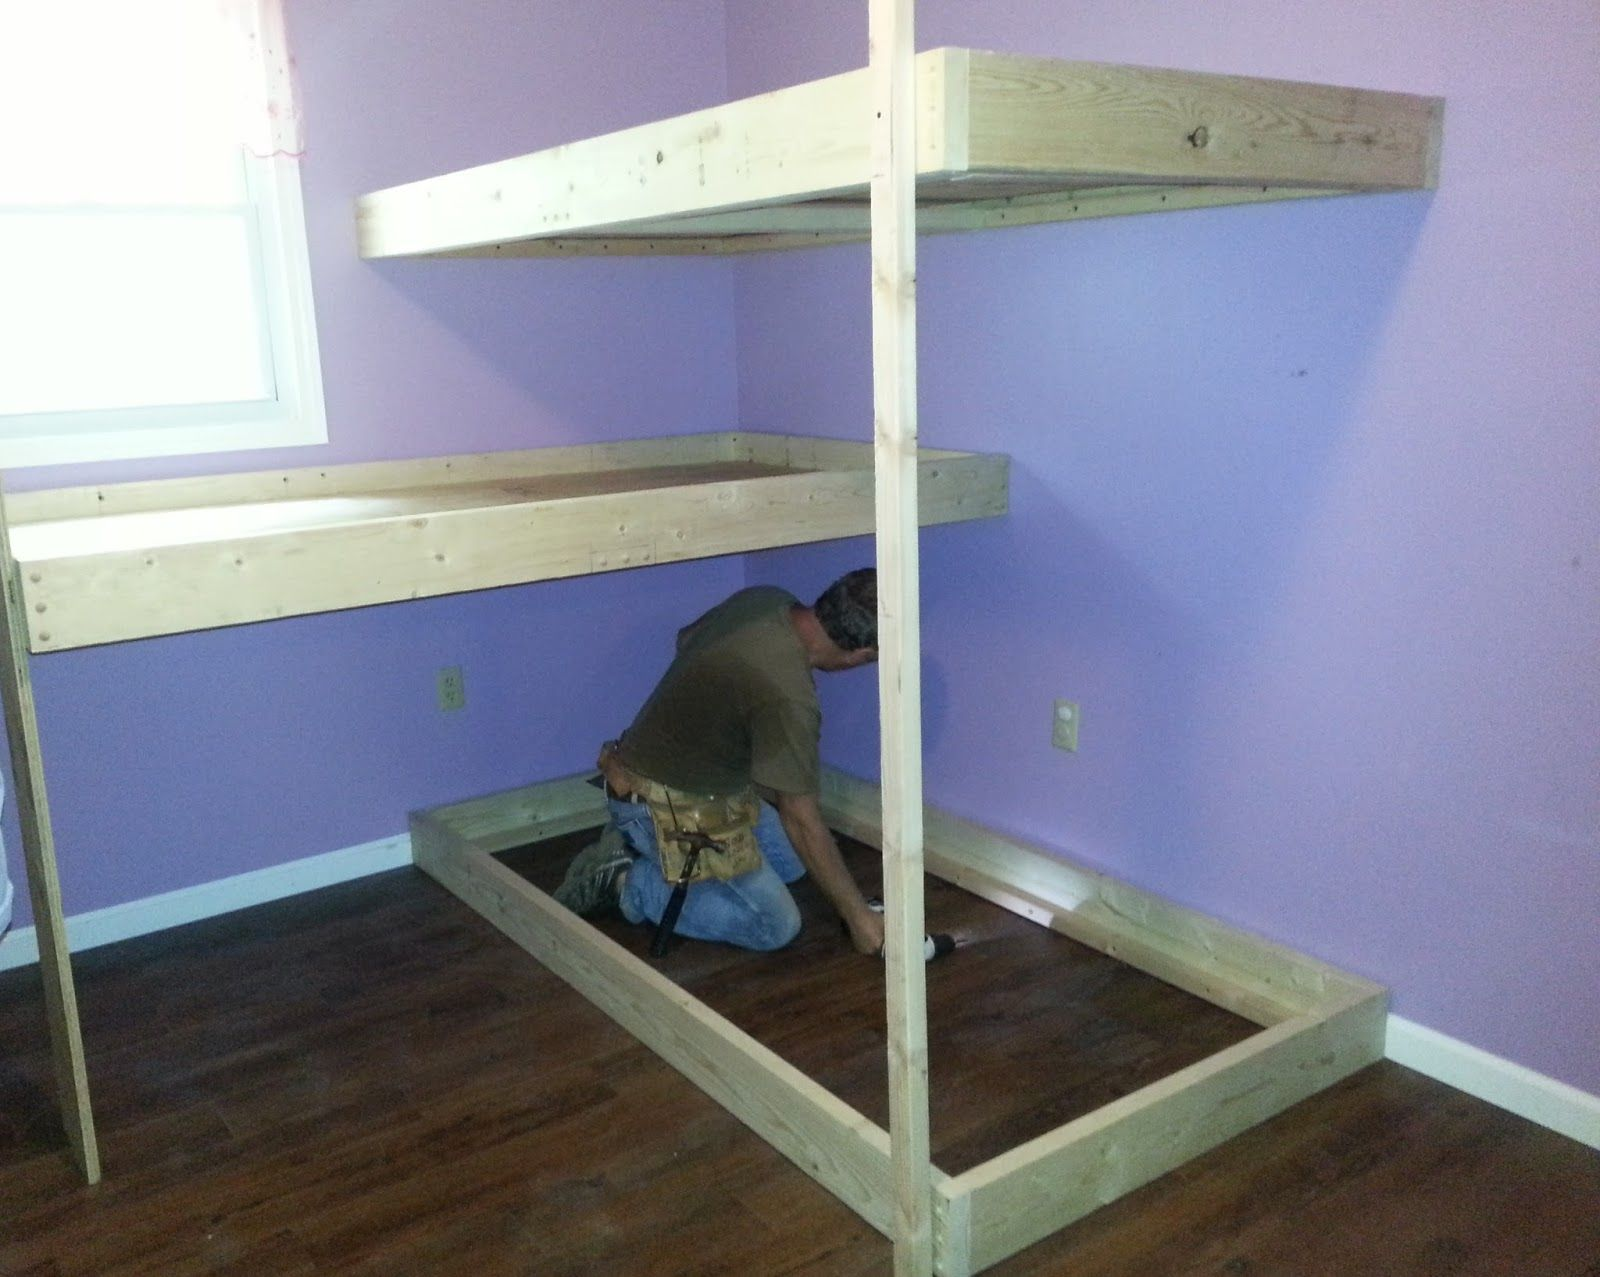 Triple bunk beds for teenagers - Diy Instructions For A Cool Bunk Bed